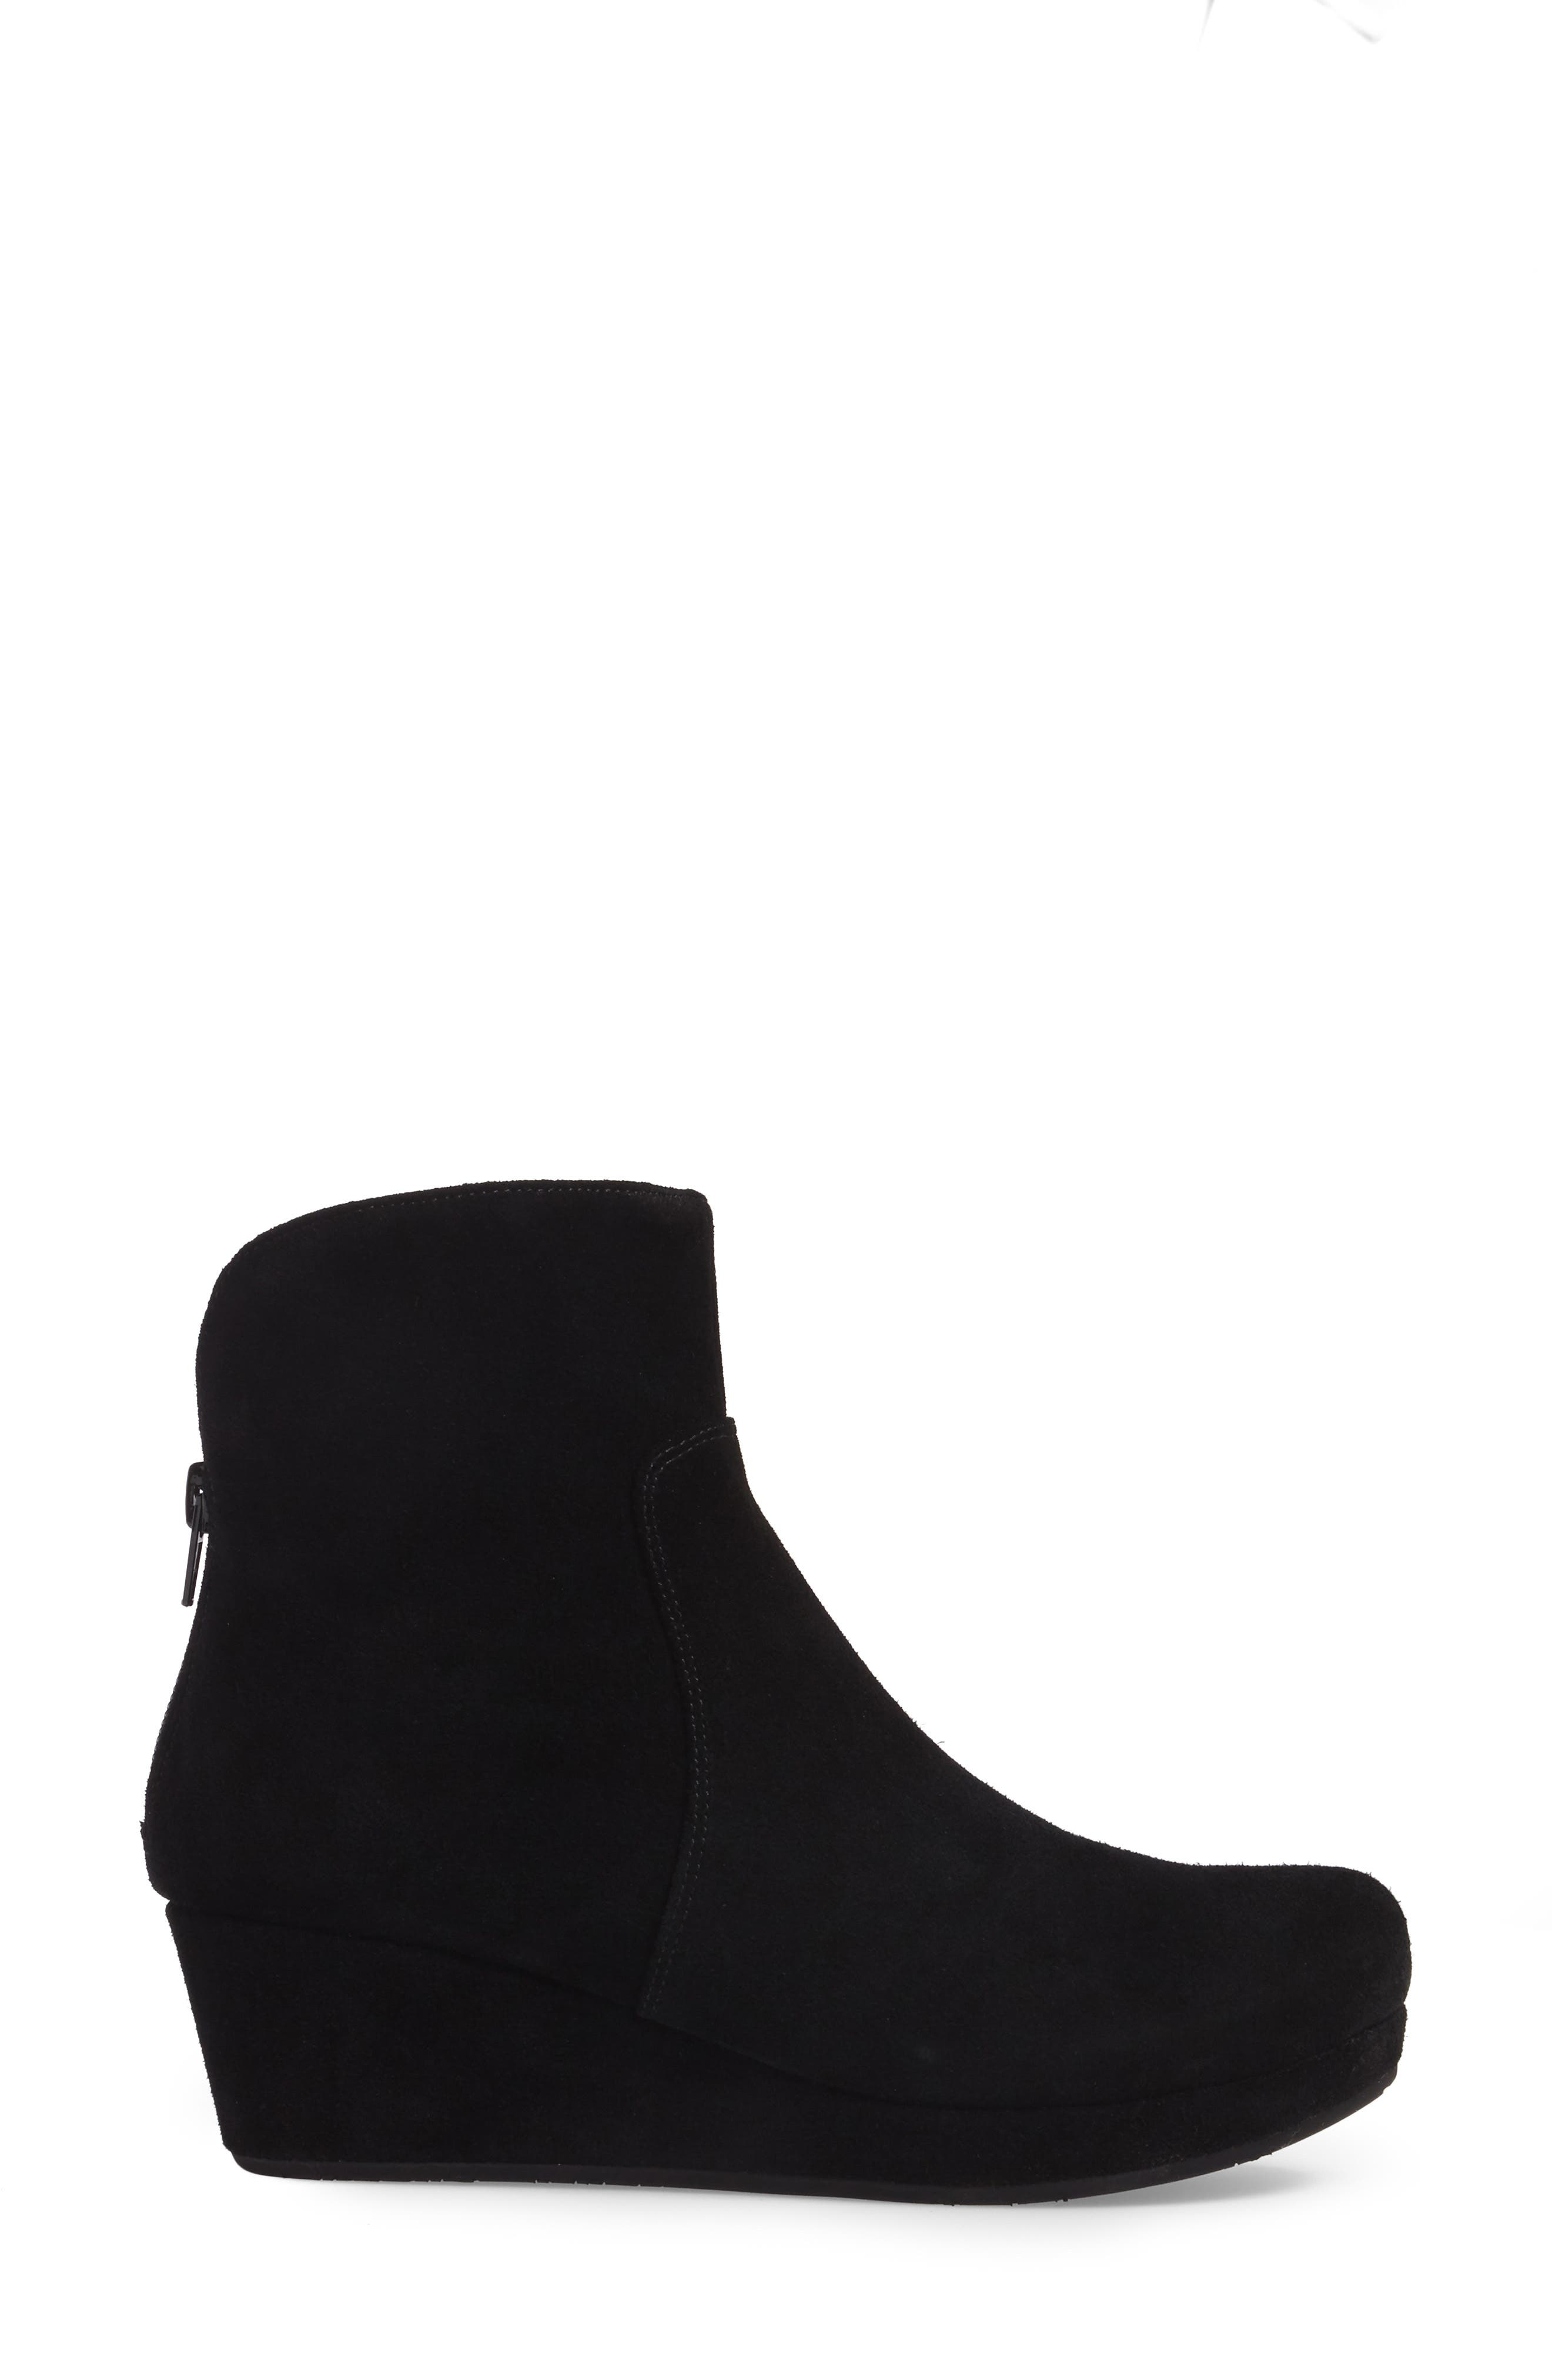 Yarden Wedge Bootie,                             Alternate thumbnail 3, color,                             Black Suede